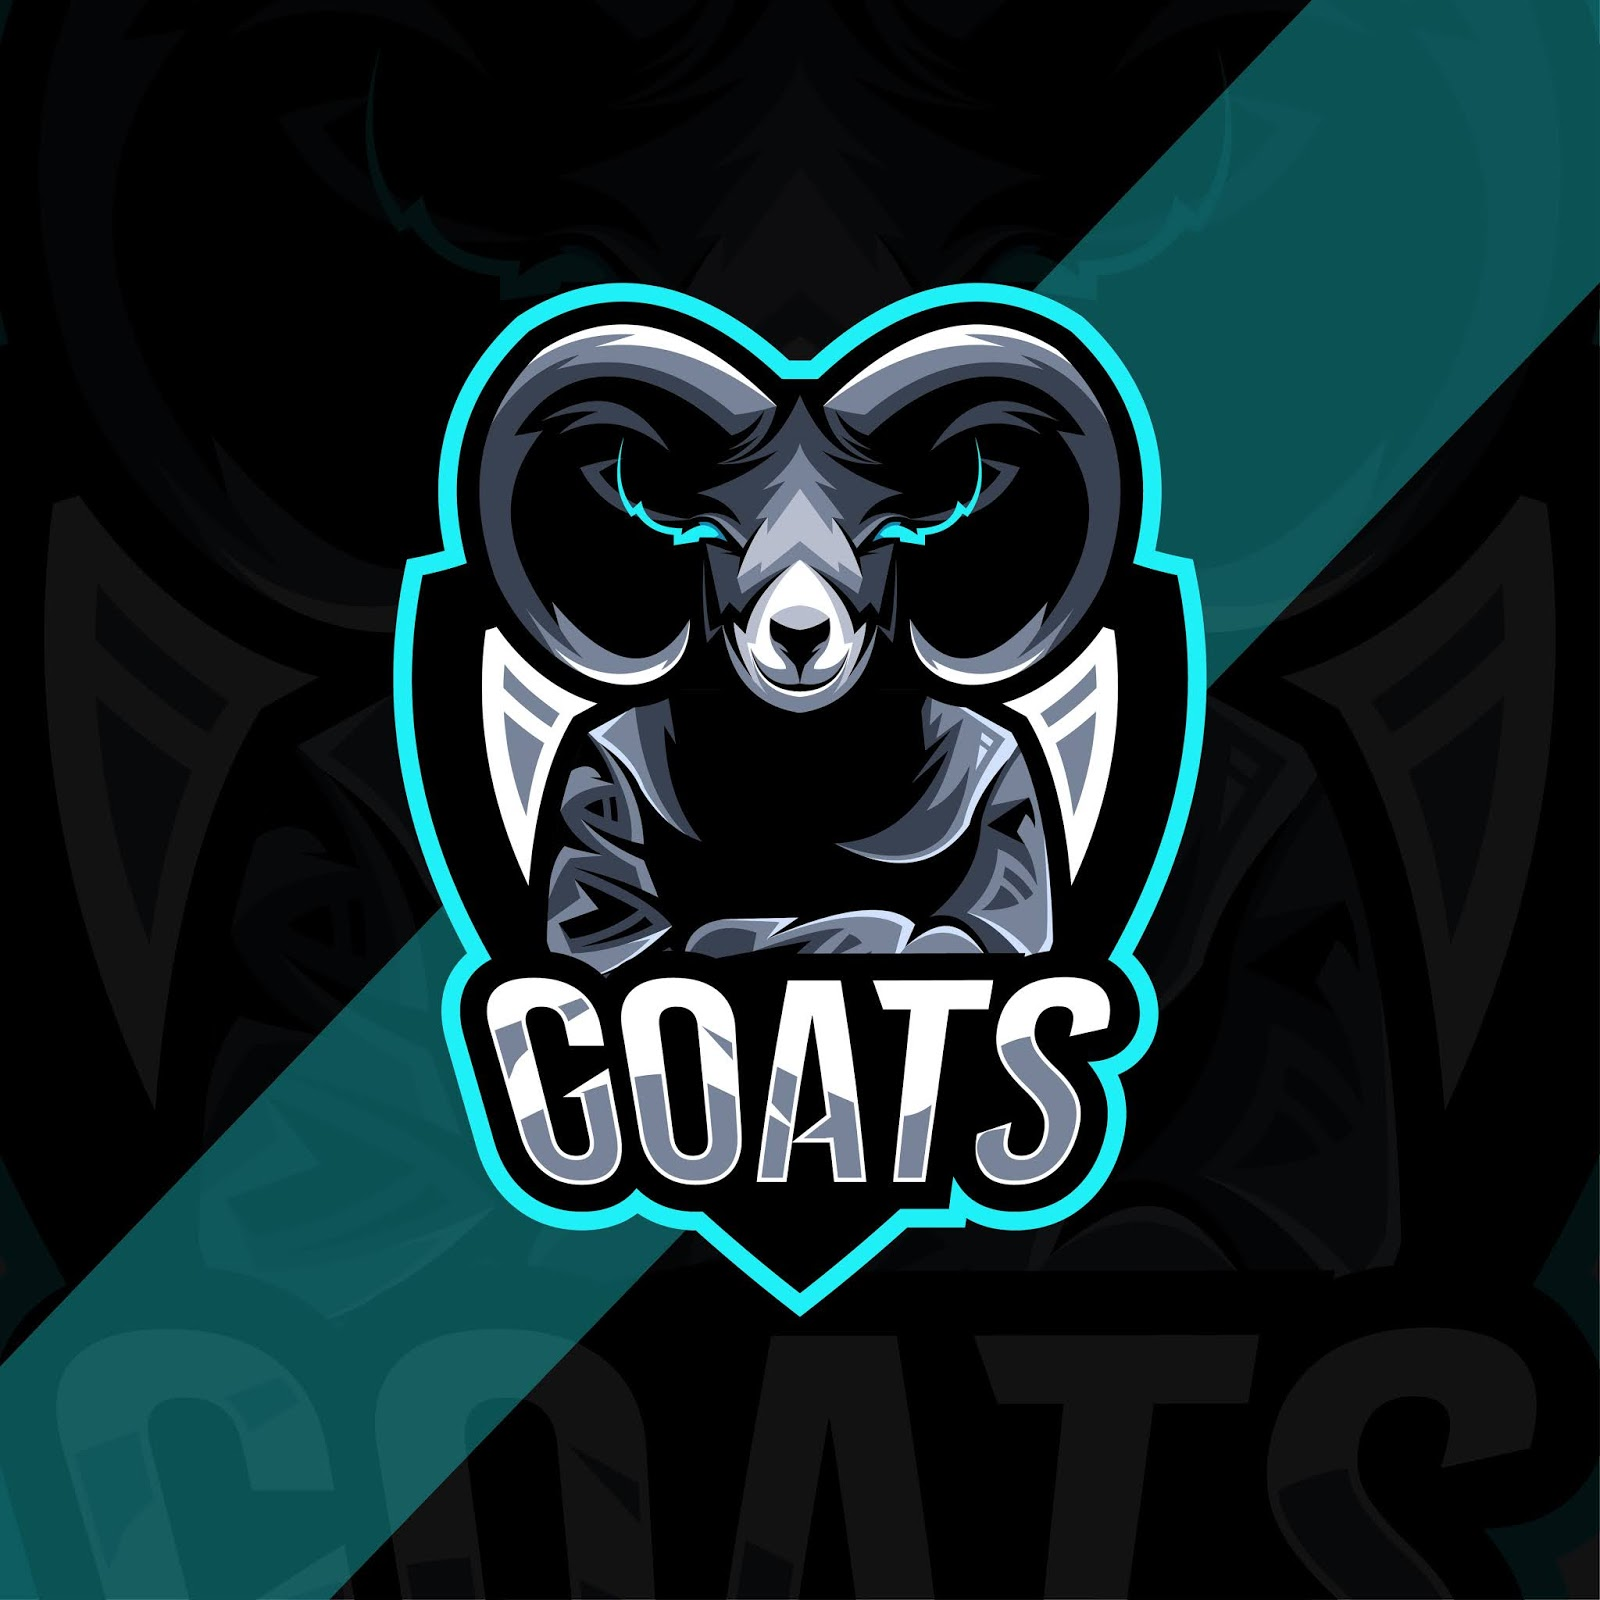 Goat Mascot Logo Template Design Free Download Vector CDR, AI, EPS and PNG Formats